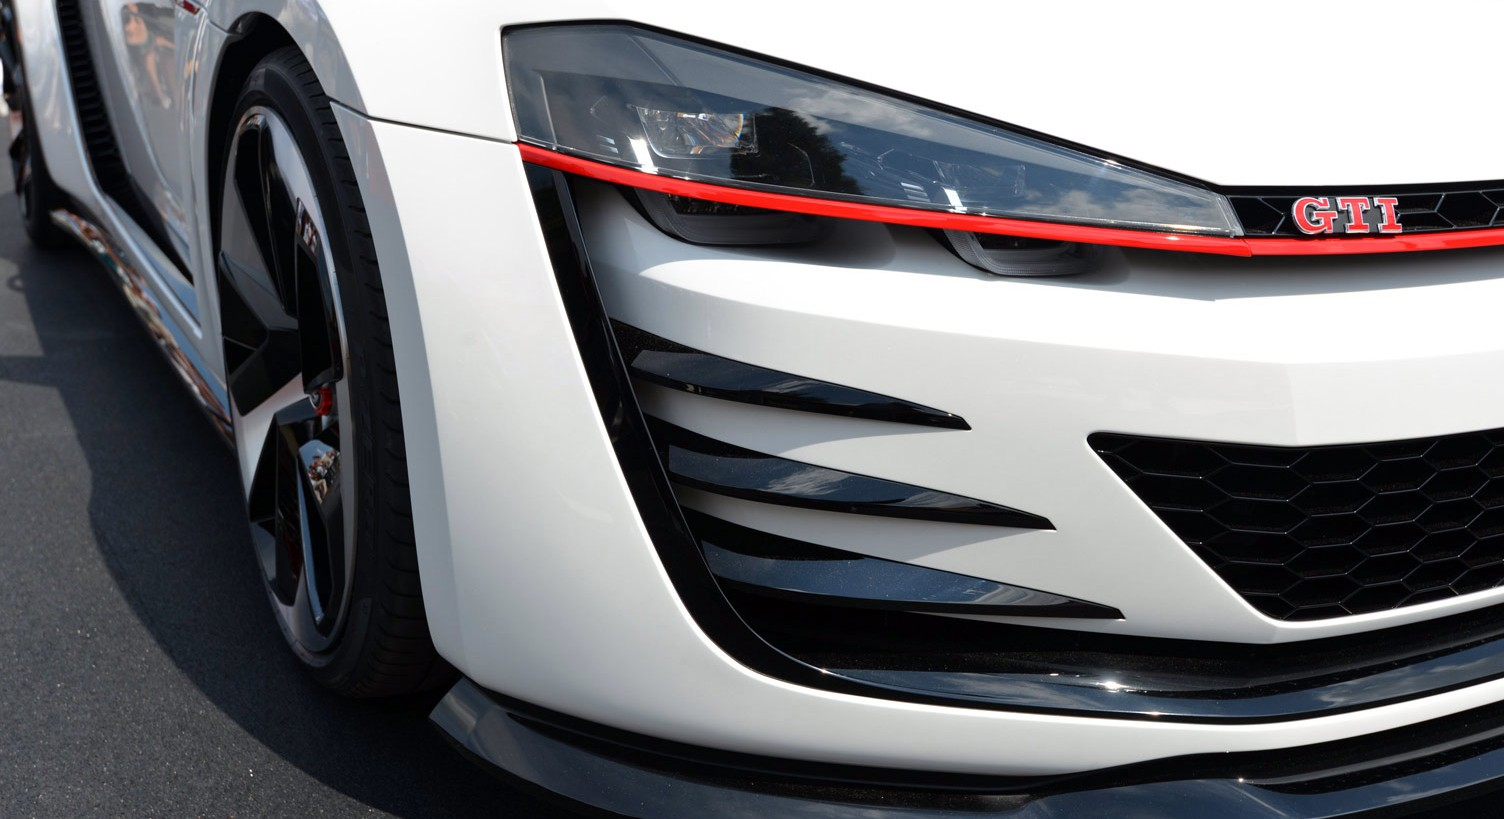 volkswagen-design-vision-gti-worthersee-040